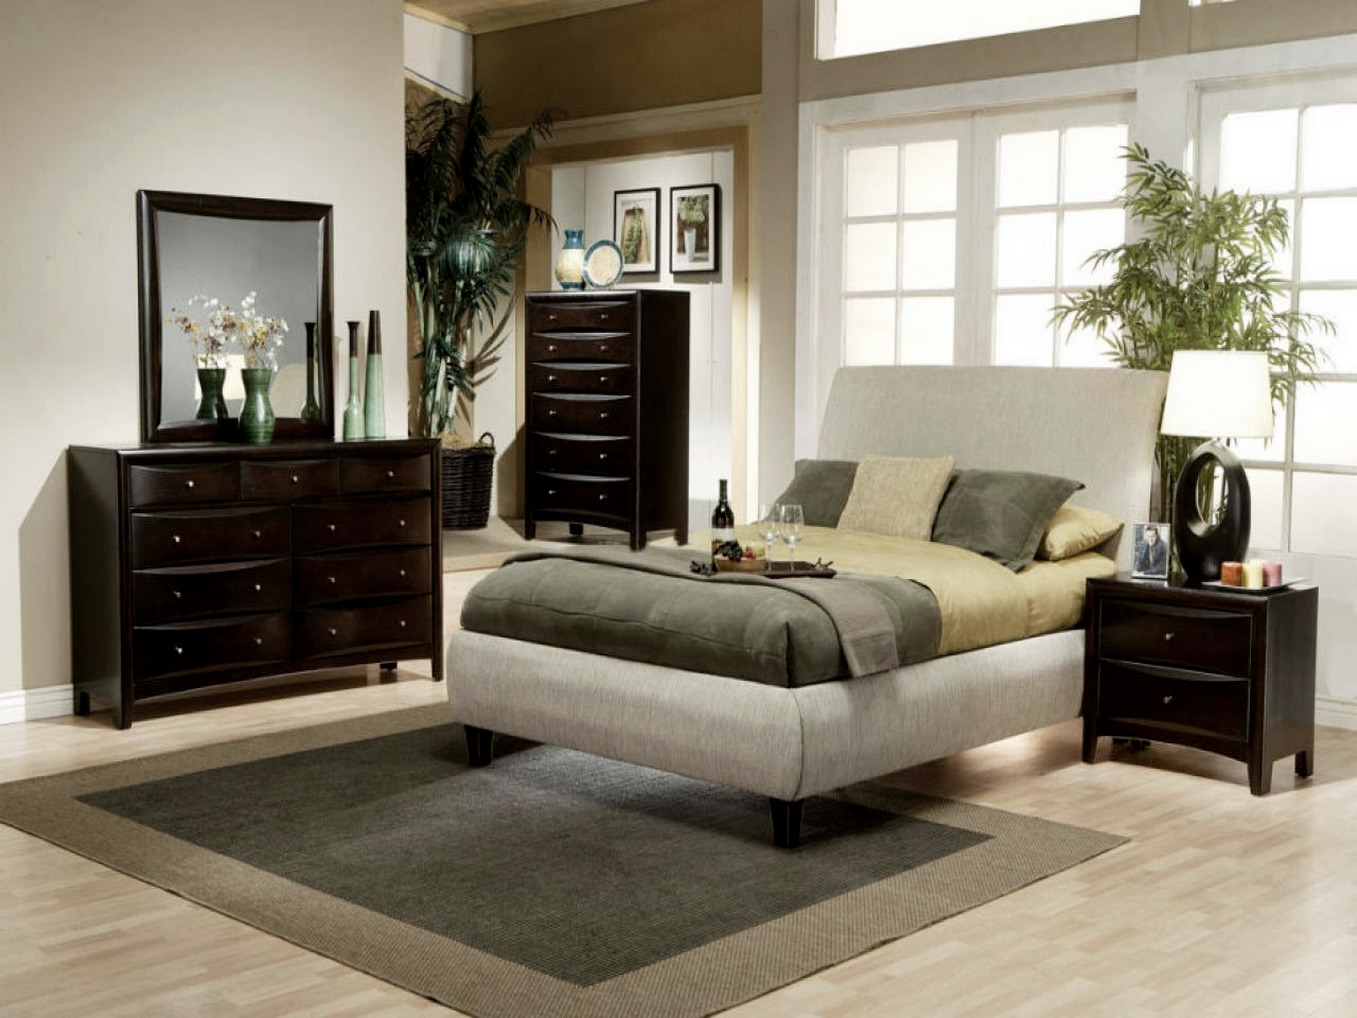 American Furniture Warehouse Bedroom Sets Models